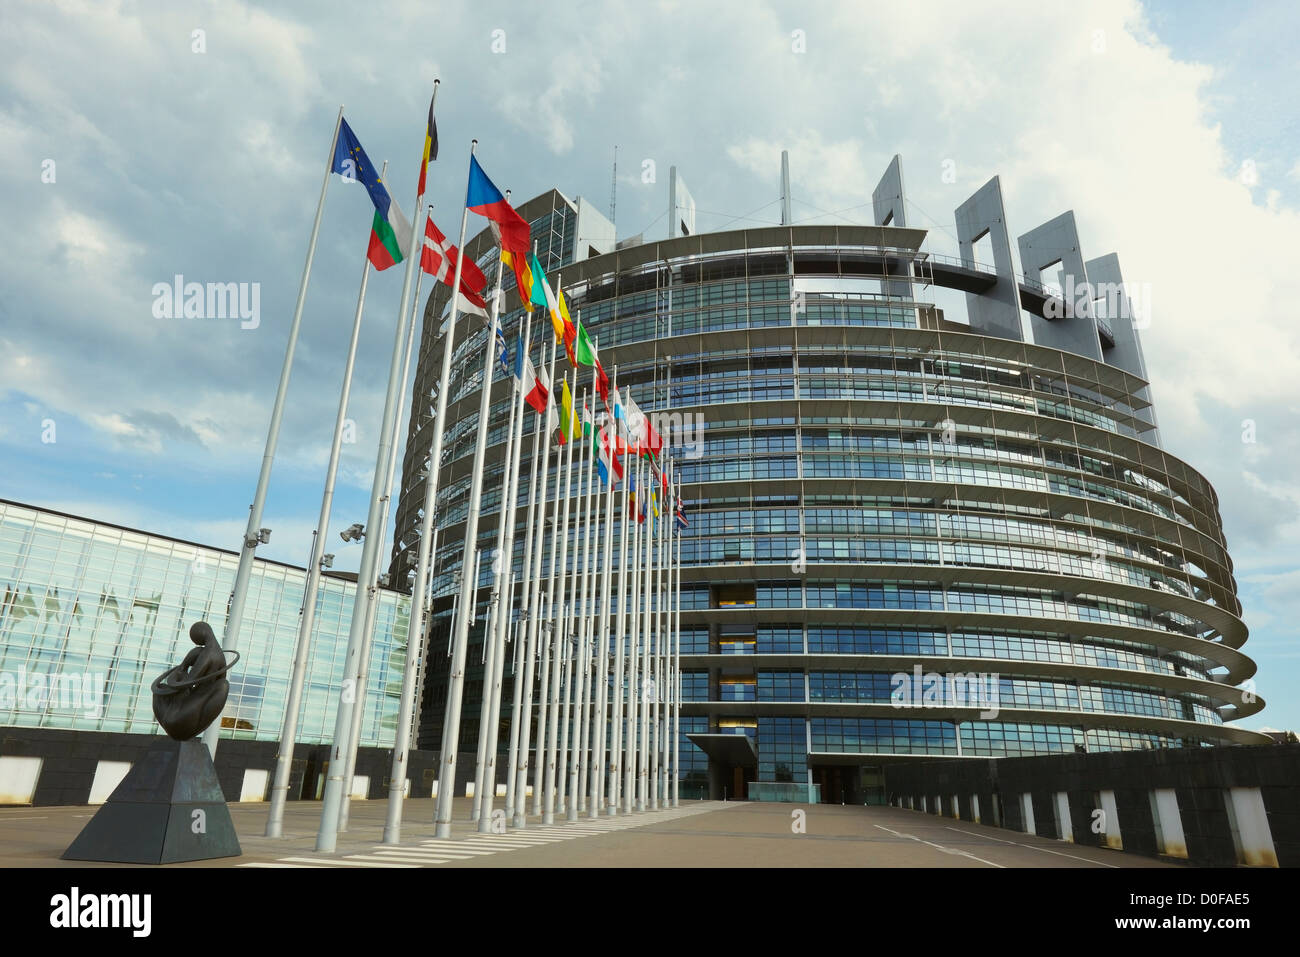 European Parliament seat, Louise Weiss building, Strasbourg, Alsace, France - Stock Image